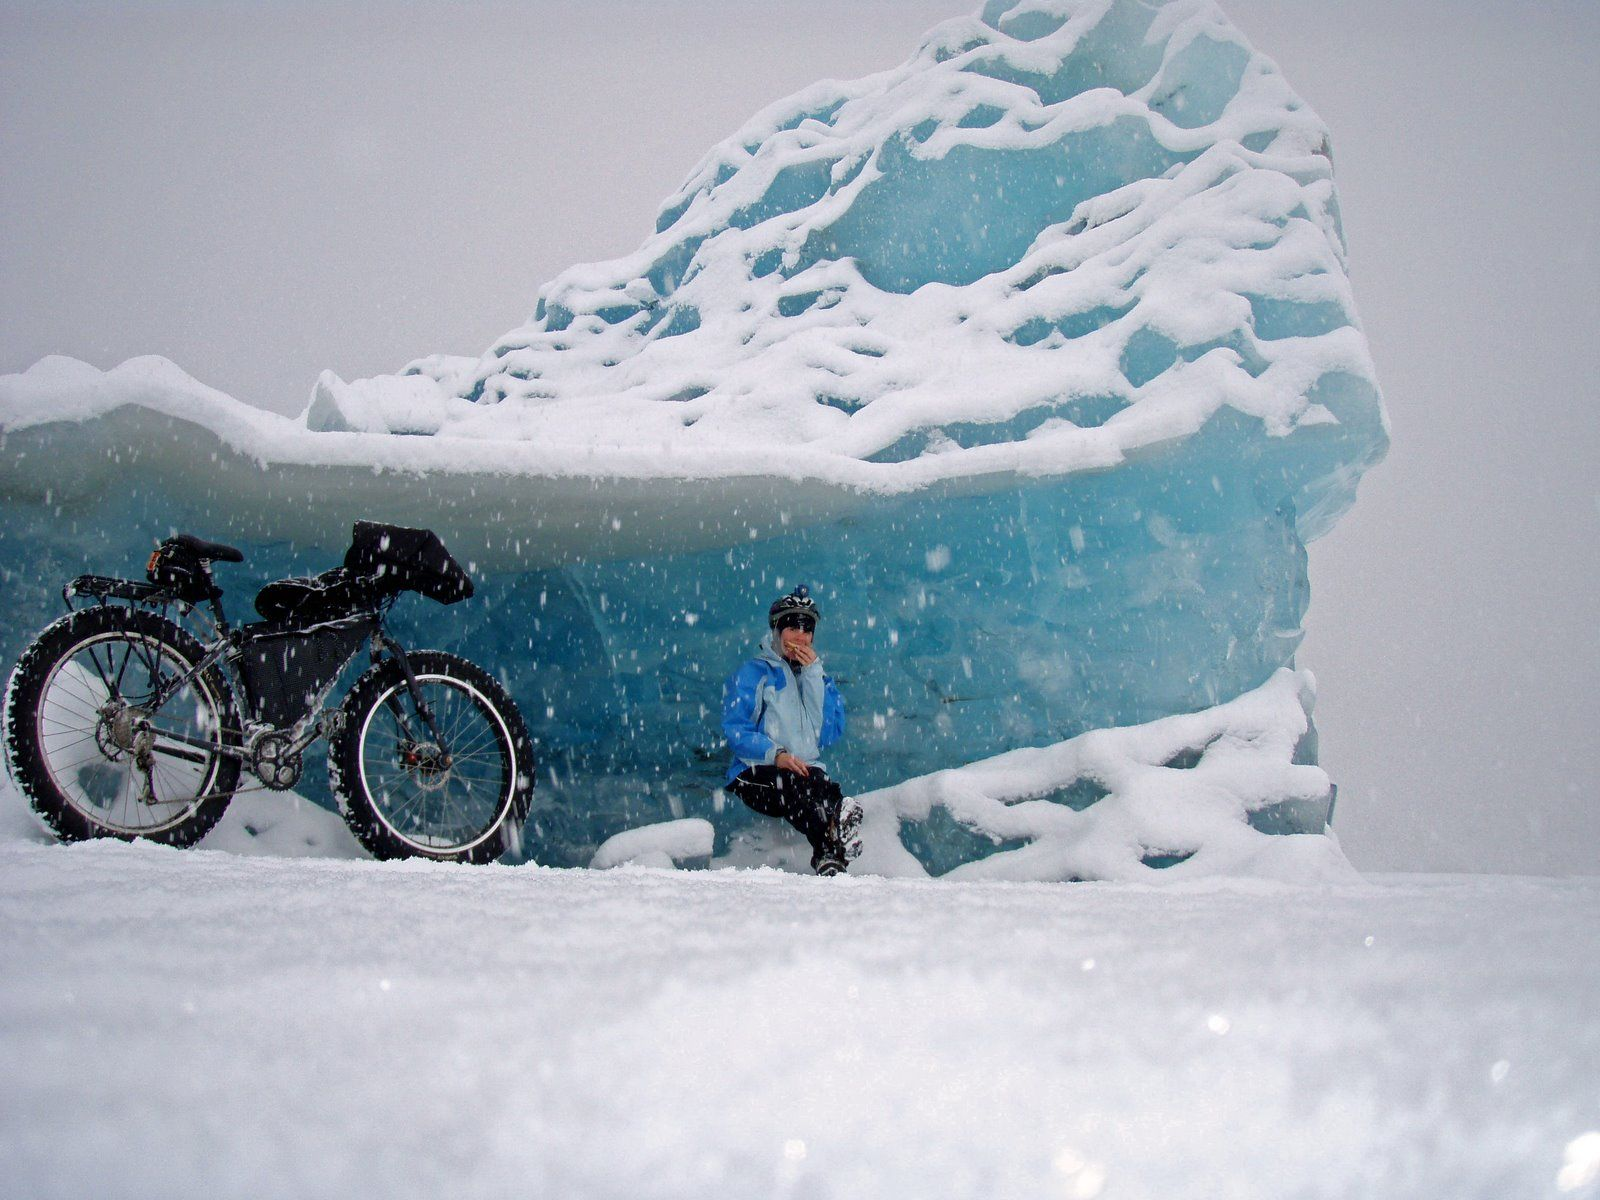 Snow Fall Fat Bike ….Set your mind free on a Fat Bike and see where it takes you